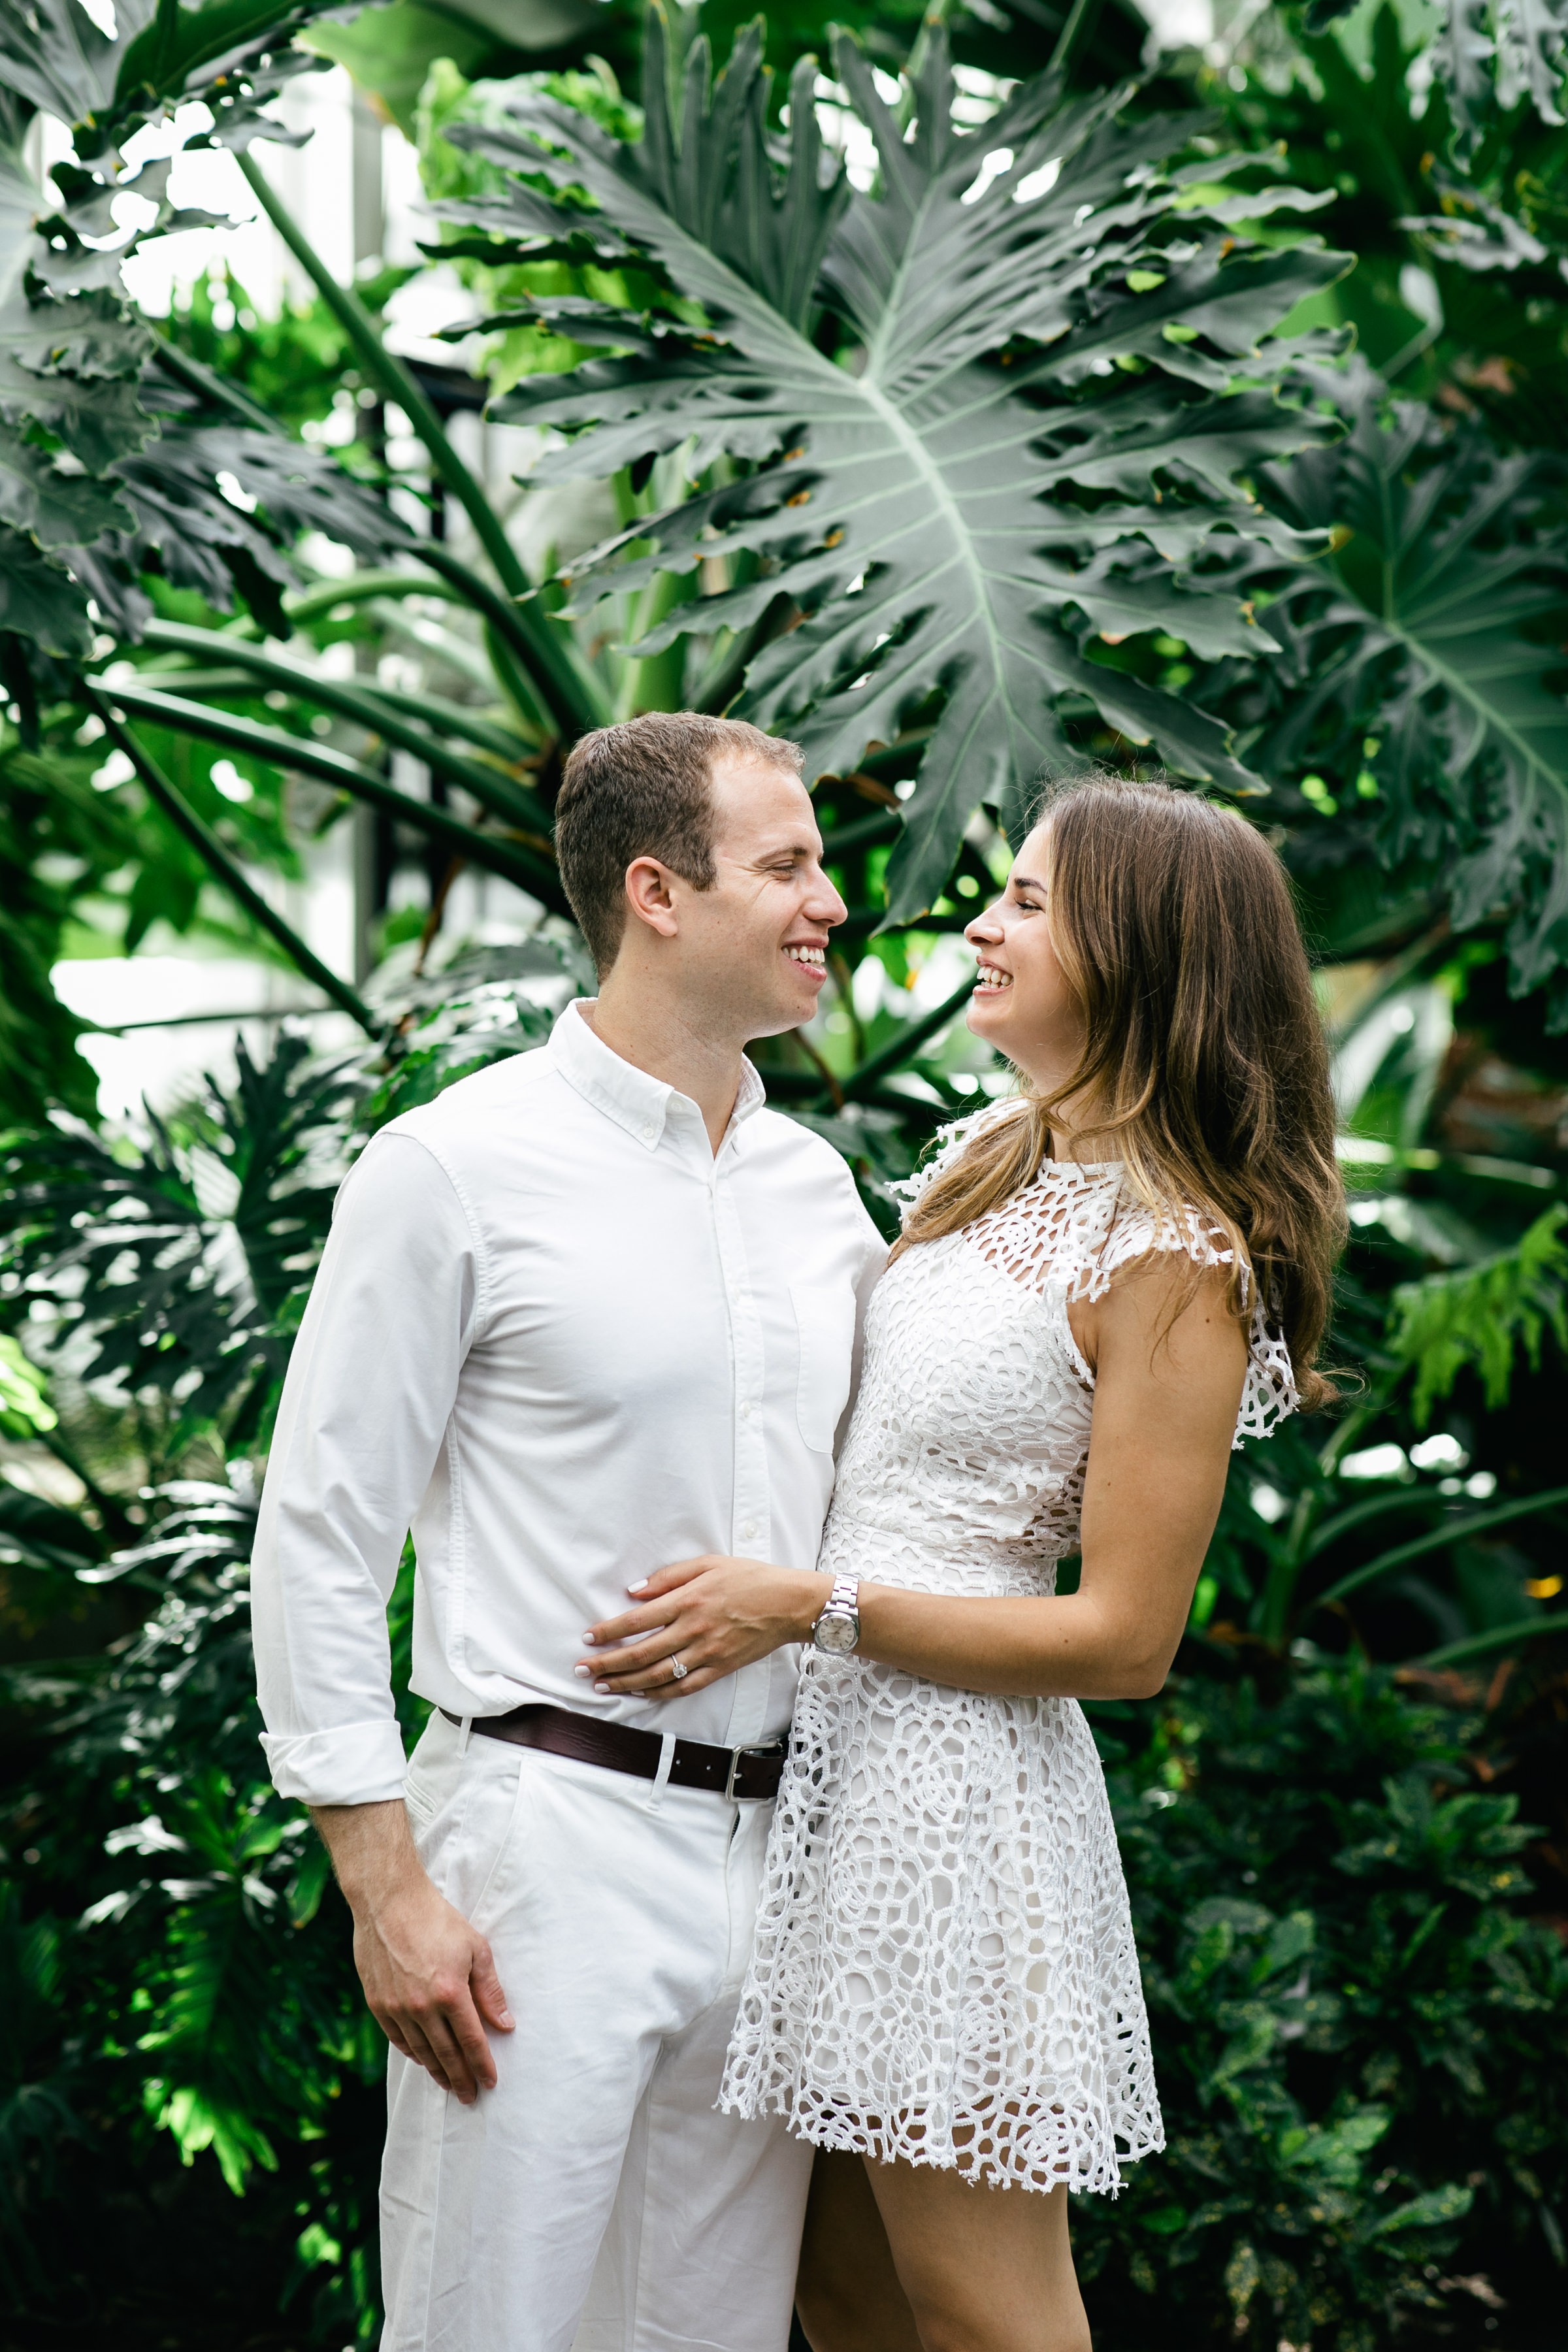 photography-family-natural-candid-engaged-fairmount-philadelphia-wedding-horticultural center-modern-lifestyle-08.JPG